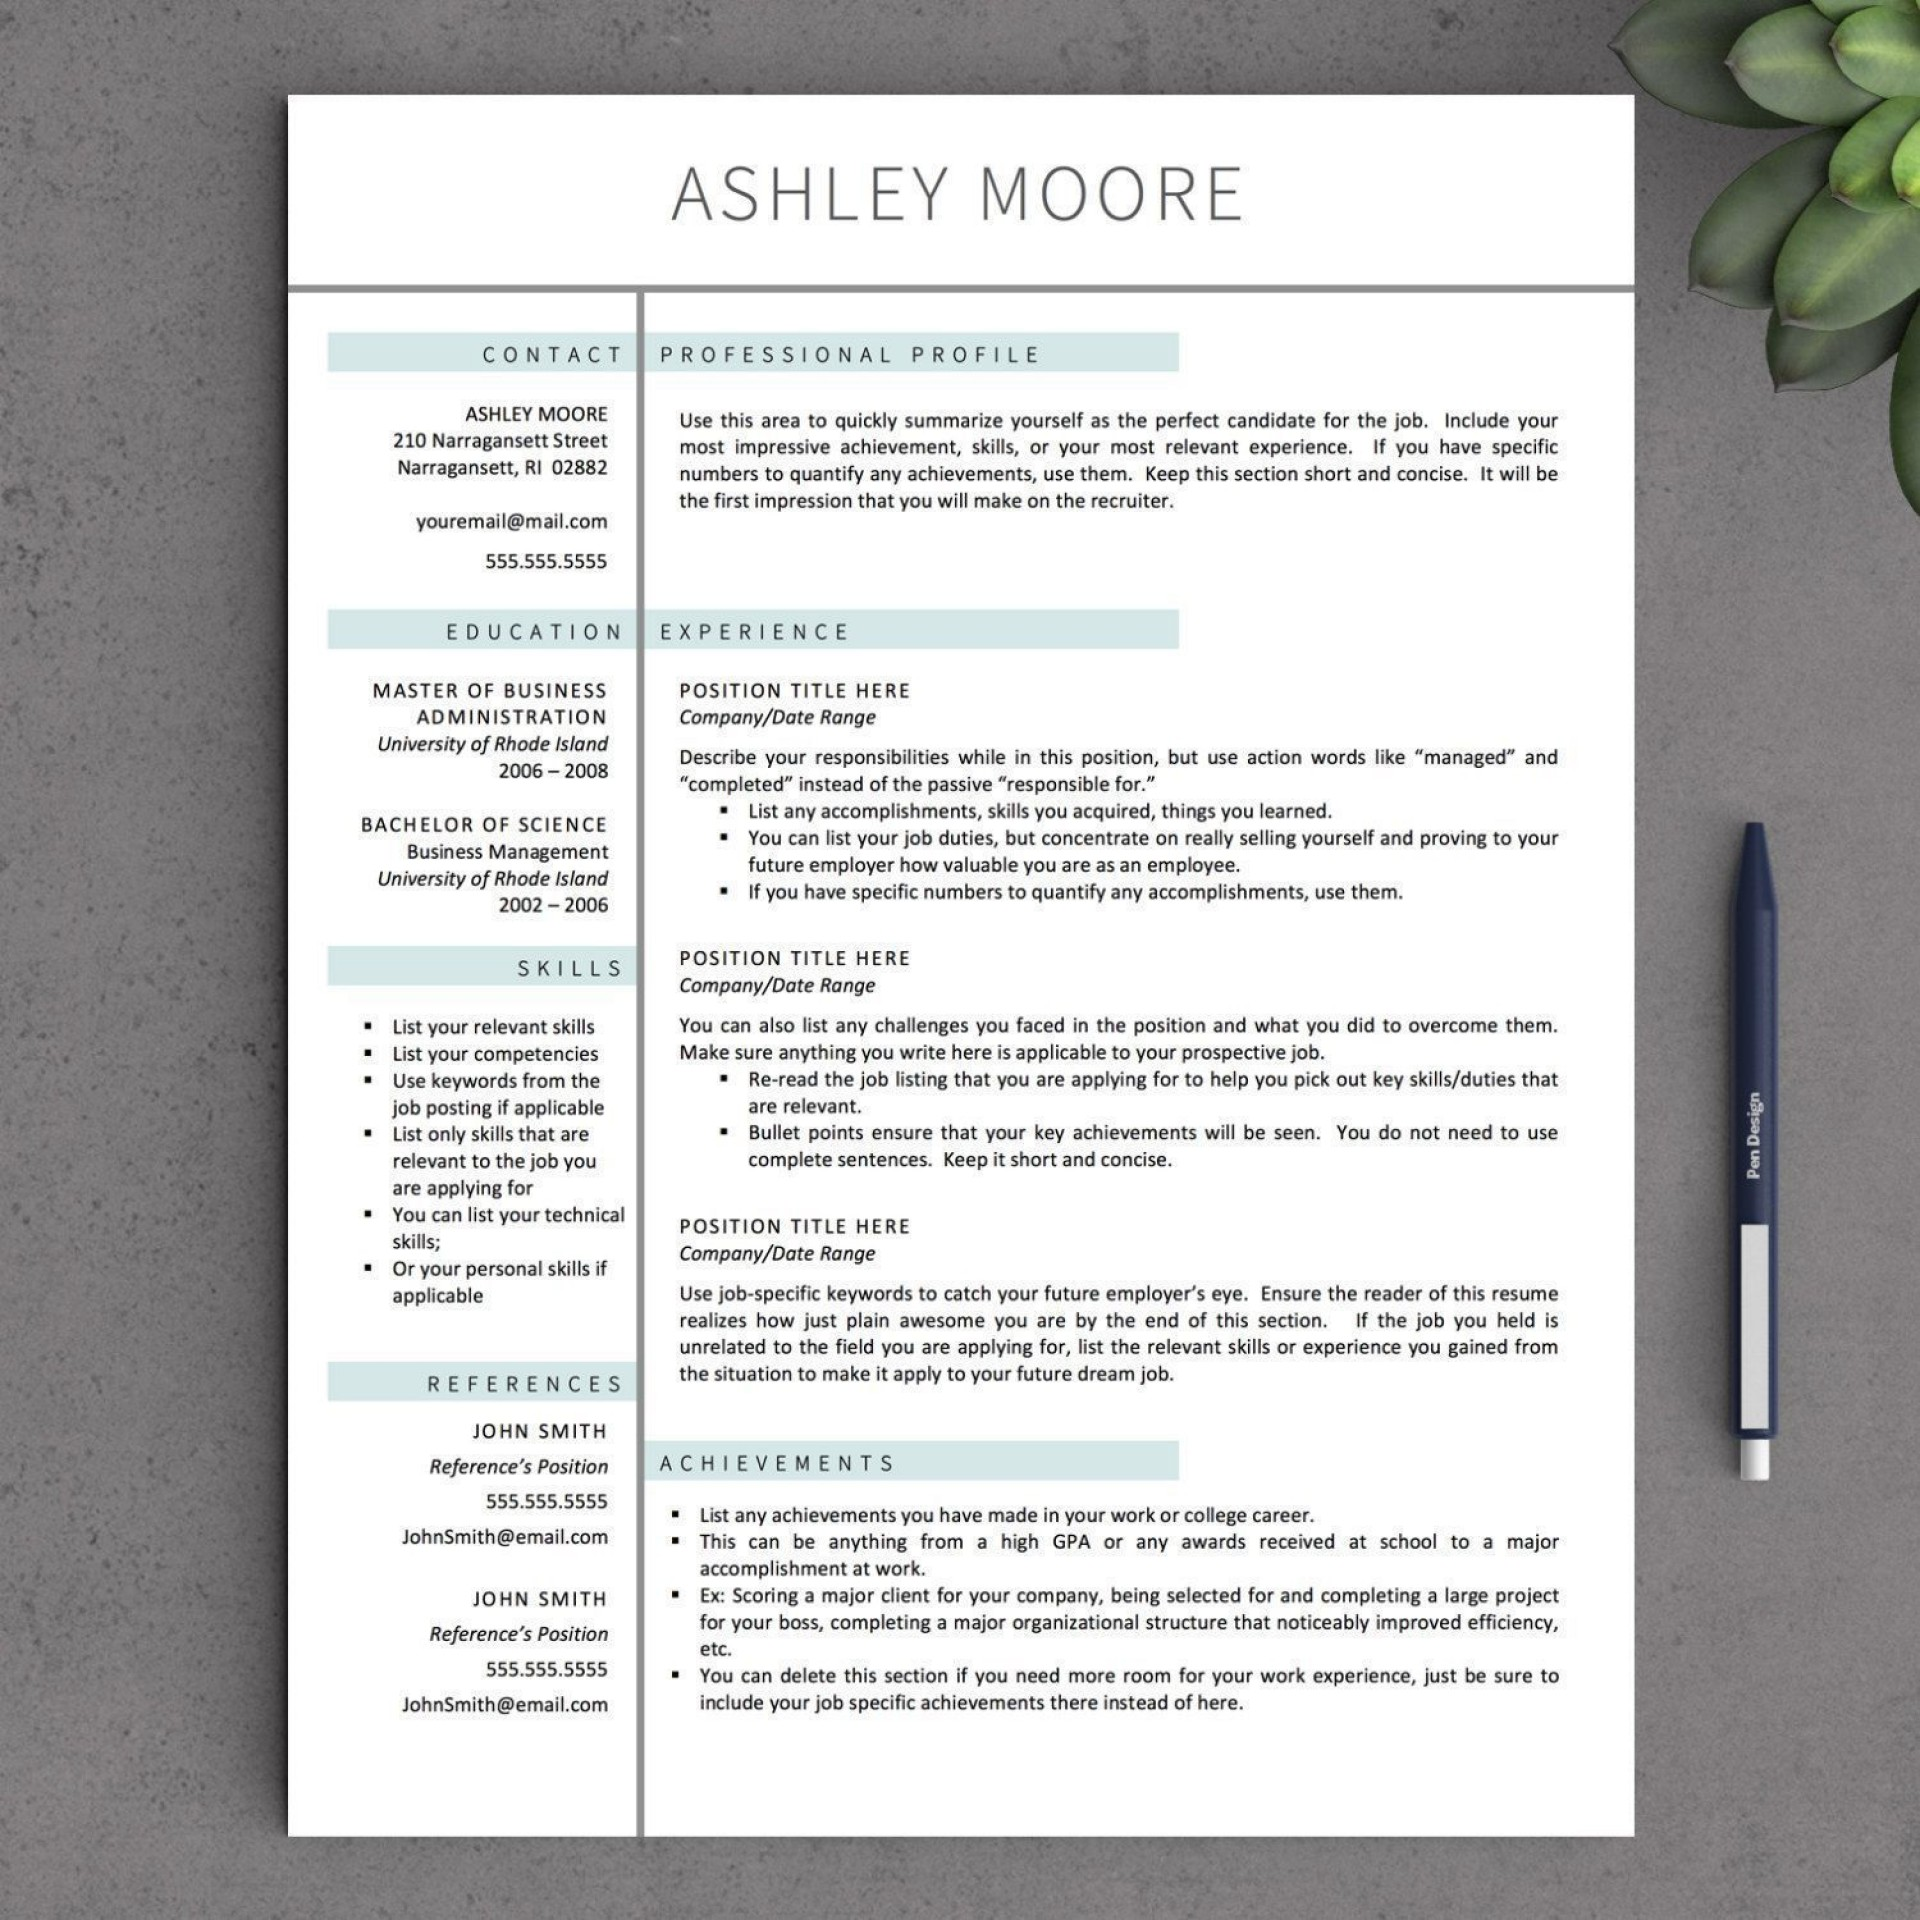 005 Striking Download Free Resume Template For Mac Page High Resolution  Pages1920